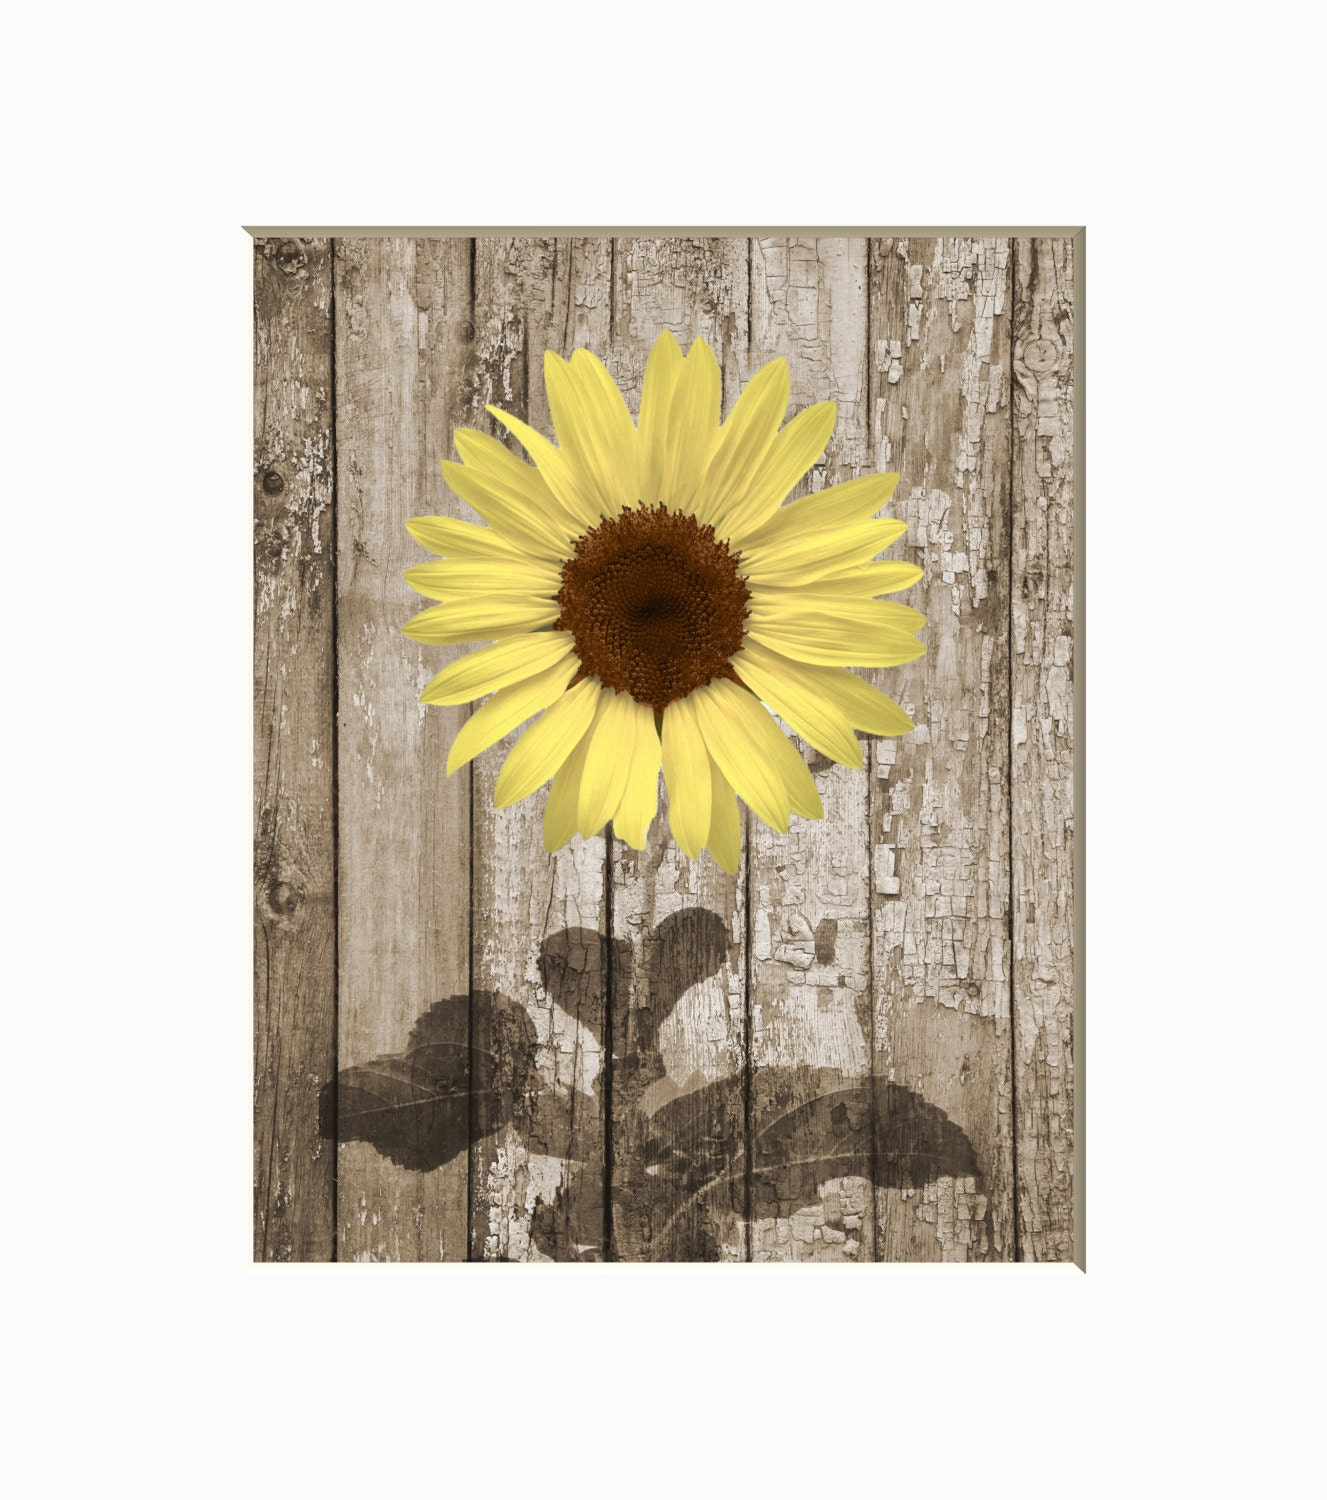 Rustic Modern Farmhouse Decor Sunflower Wall Picture Country Etsy